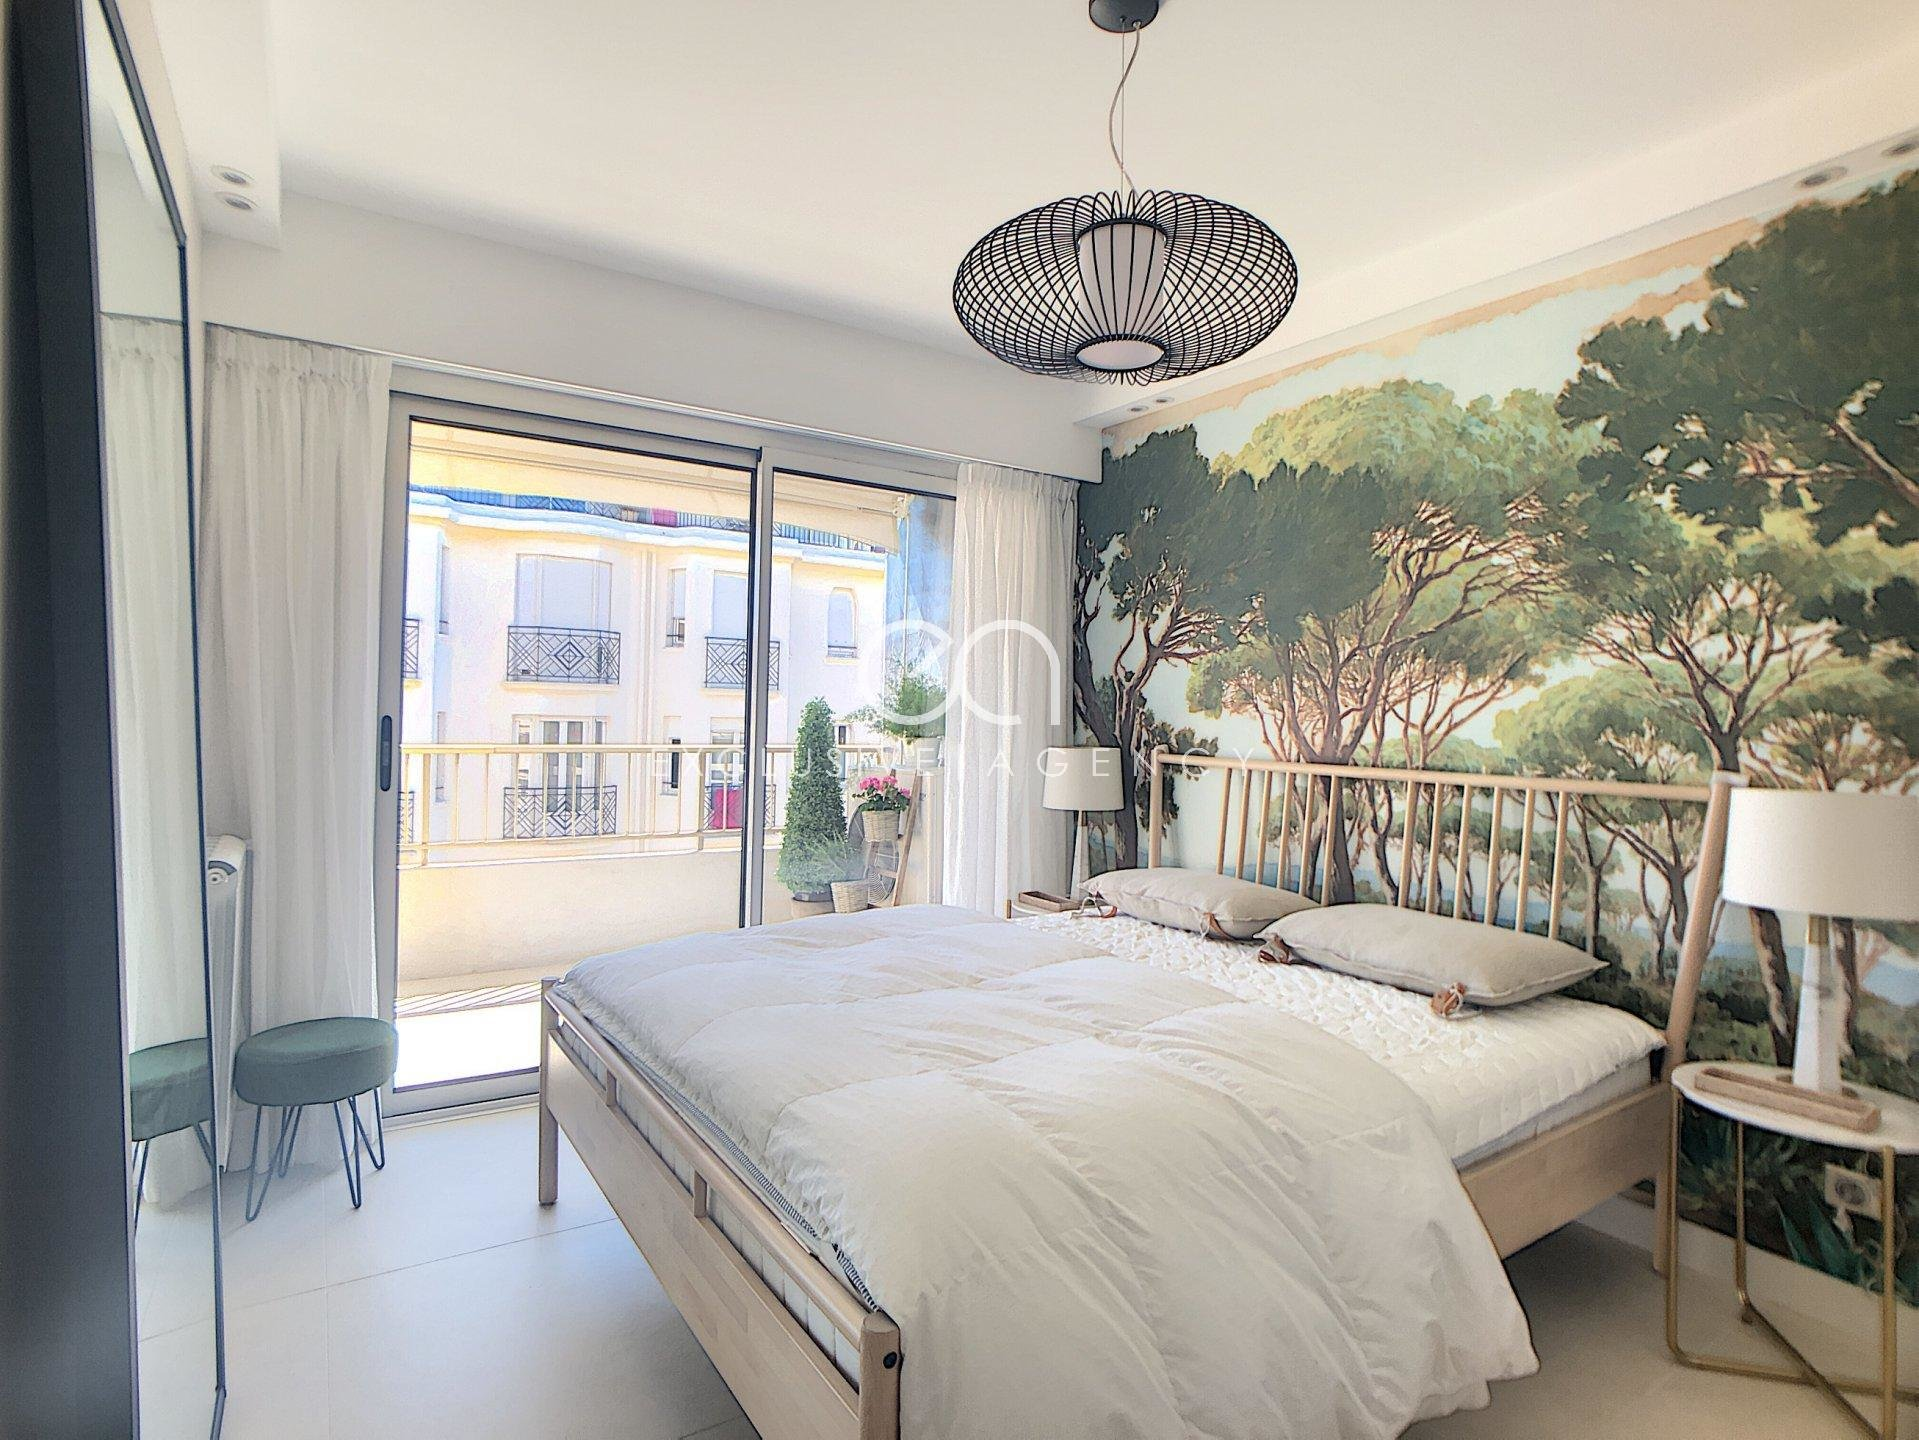 CONGRESS RENTAL CANNES CROISETTE FULLY RENOVATED ONE-BEDROOM APARTMENT 50SQM WITH TERRACE